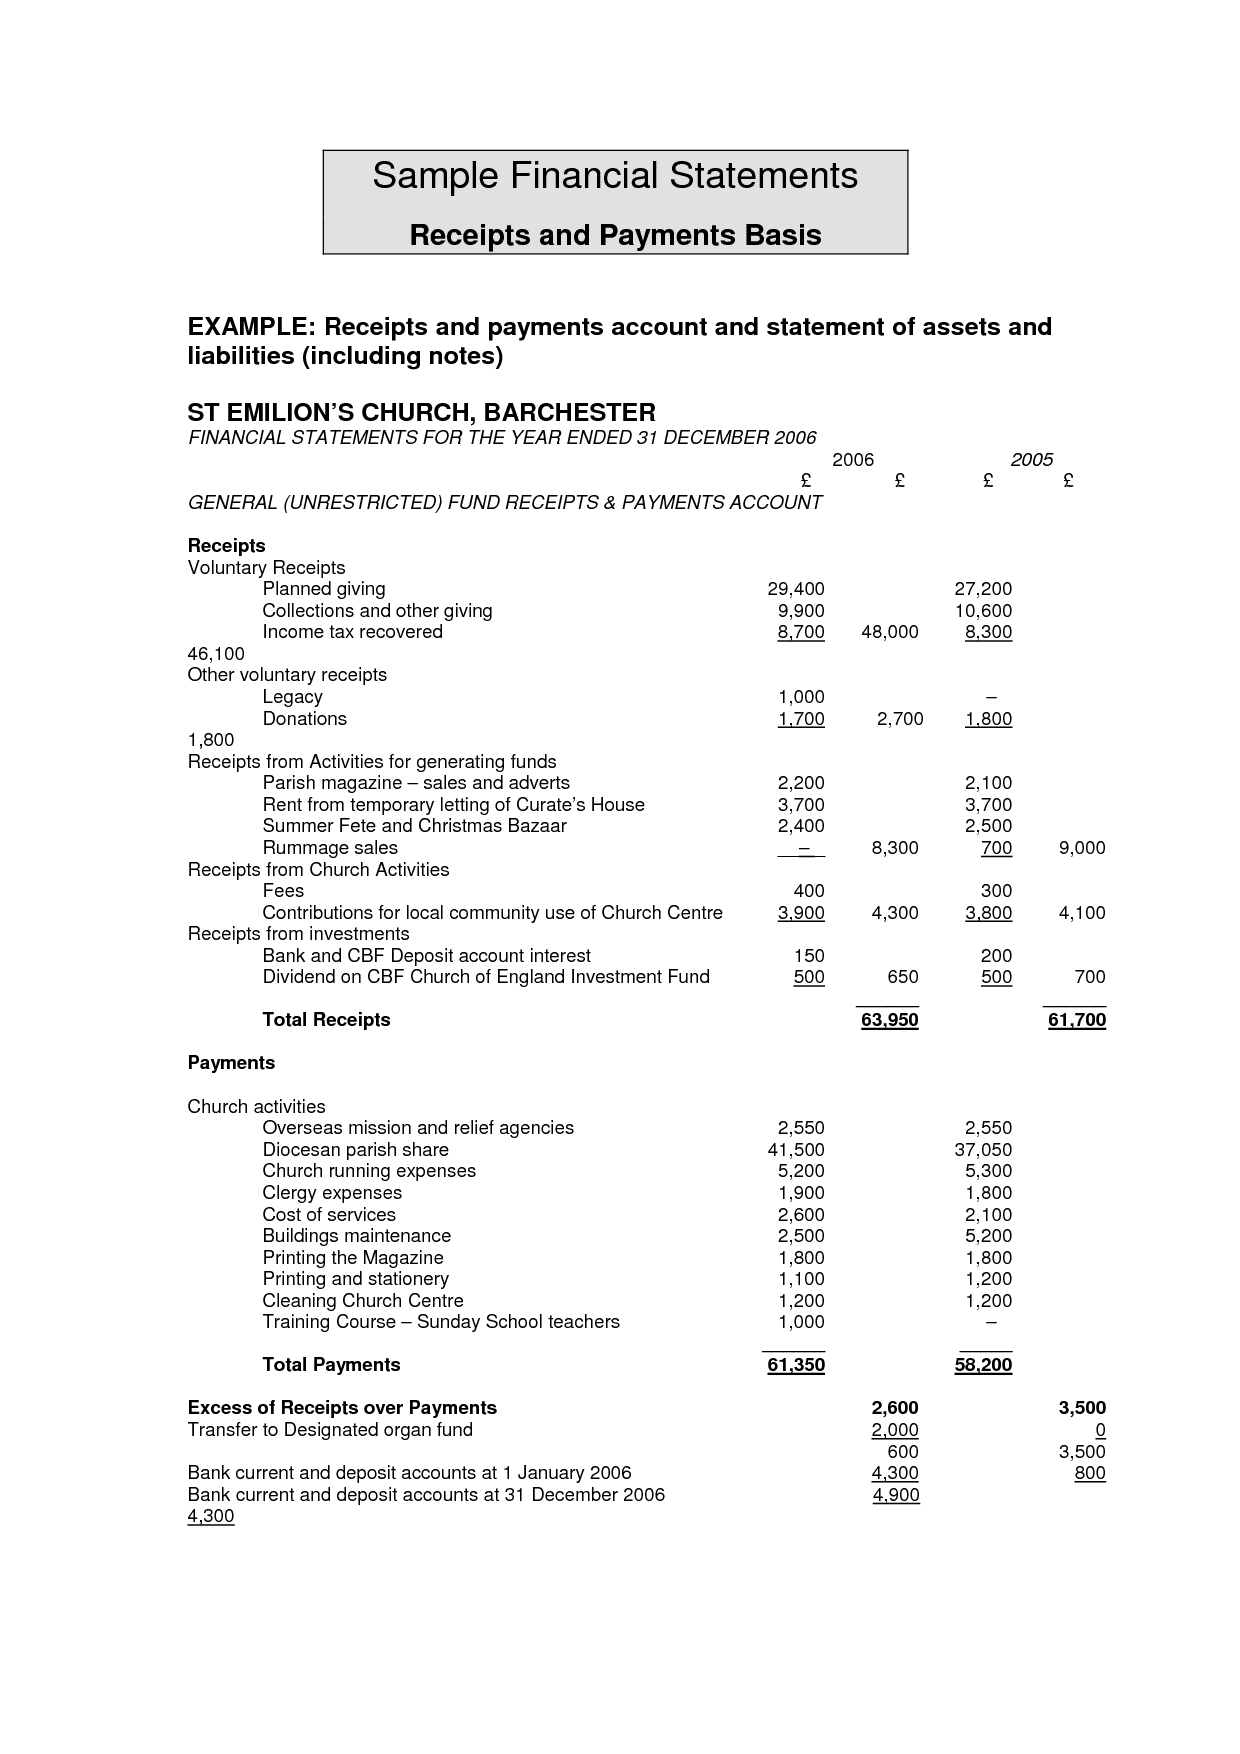 Sample Church Balance Sheet And Income Statement And Small Church Financial Statement